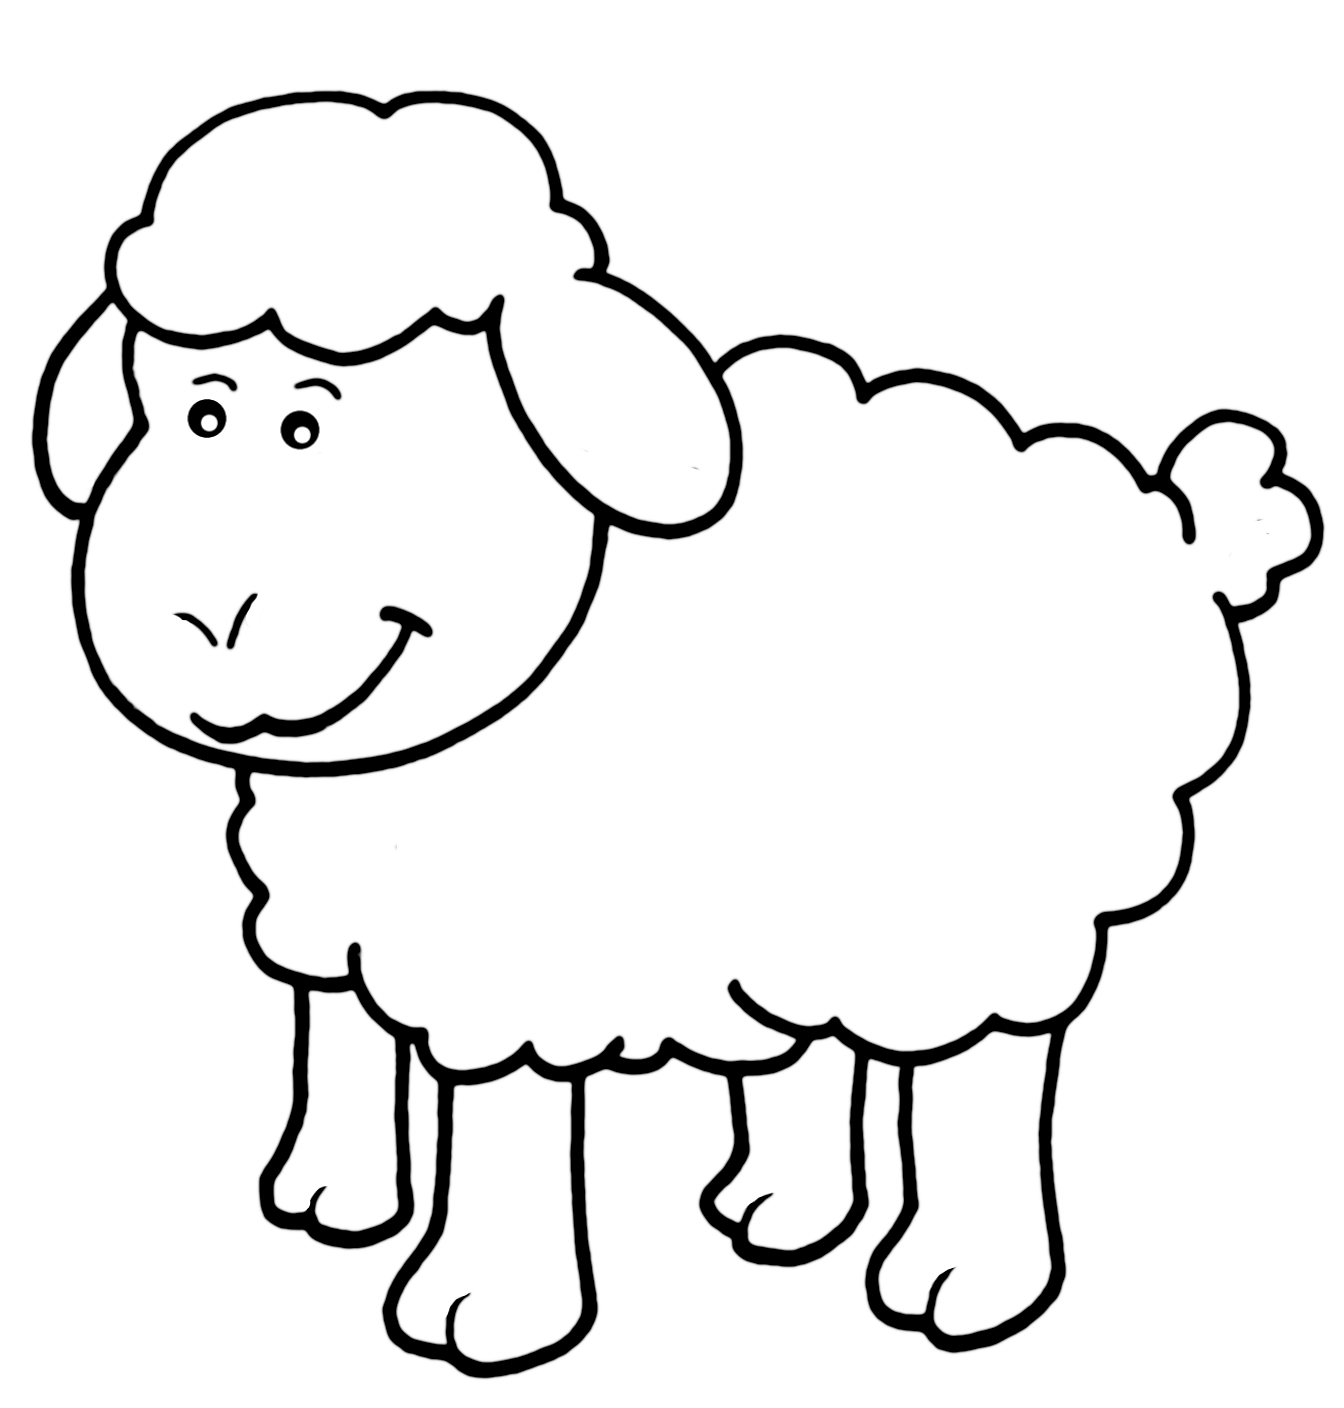 lamb coloring page cute animal sheeps coloring pages coloring page lamb